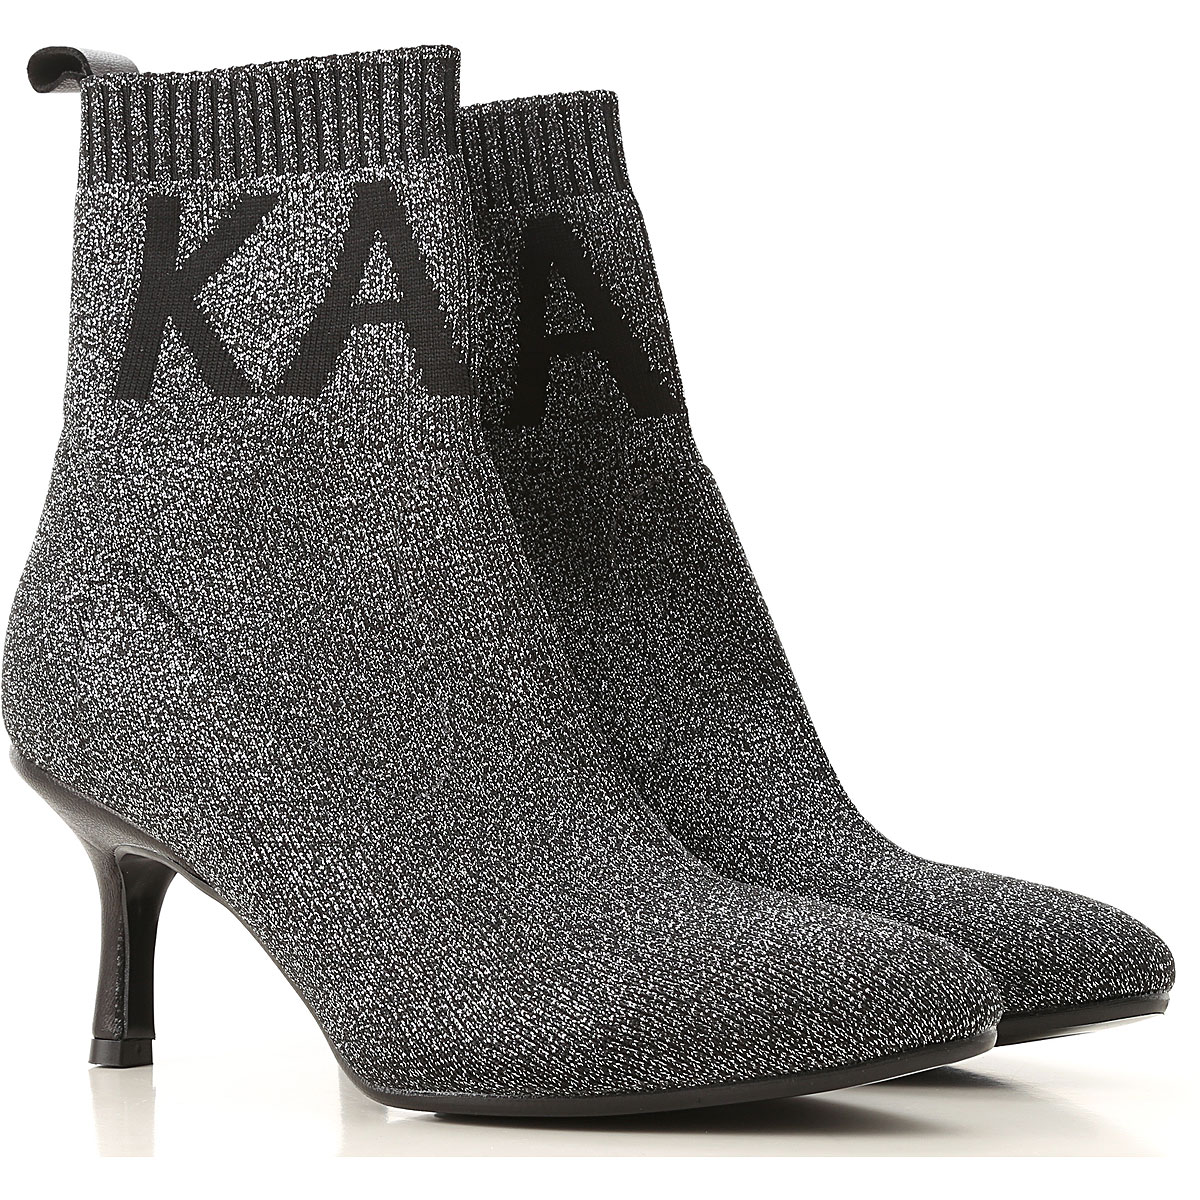 Karl Lagerfeld Boots for Women, Booties On Sale, Black, lurex, 2019, UK 4 - EU 37 - US 7 UK 5 - EU 38 - US 8 UK 8 - EU 41 - US 11 UK 6 - EU 39 UK 7 -